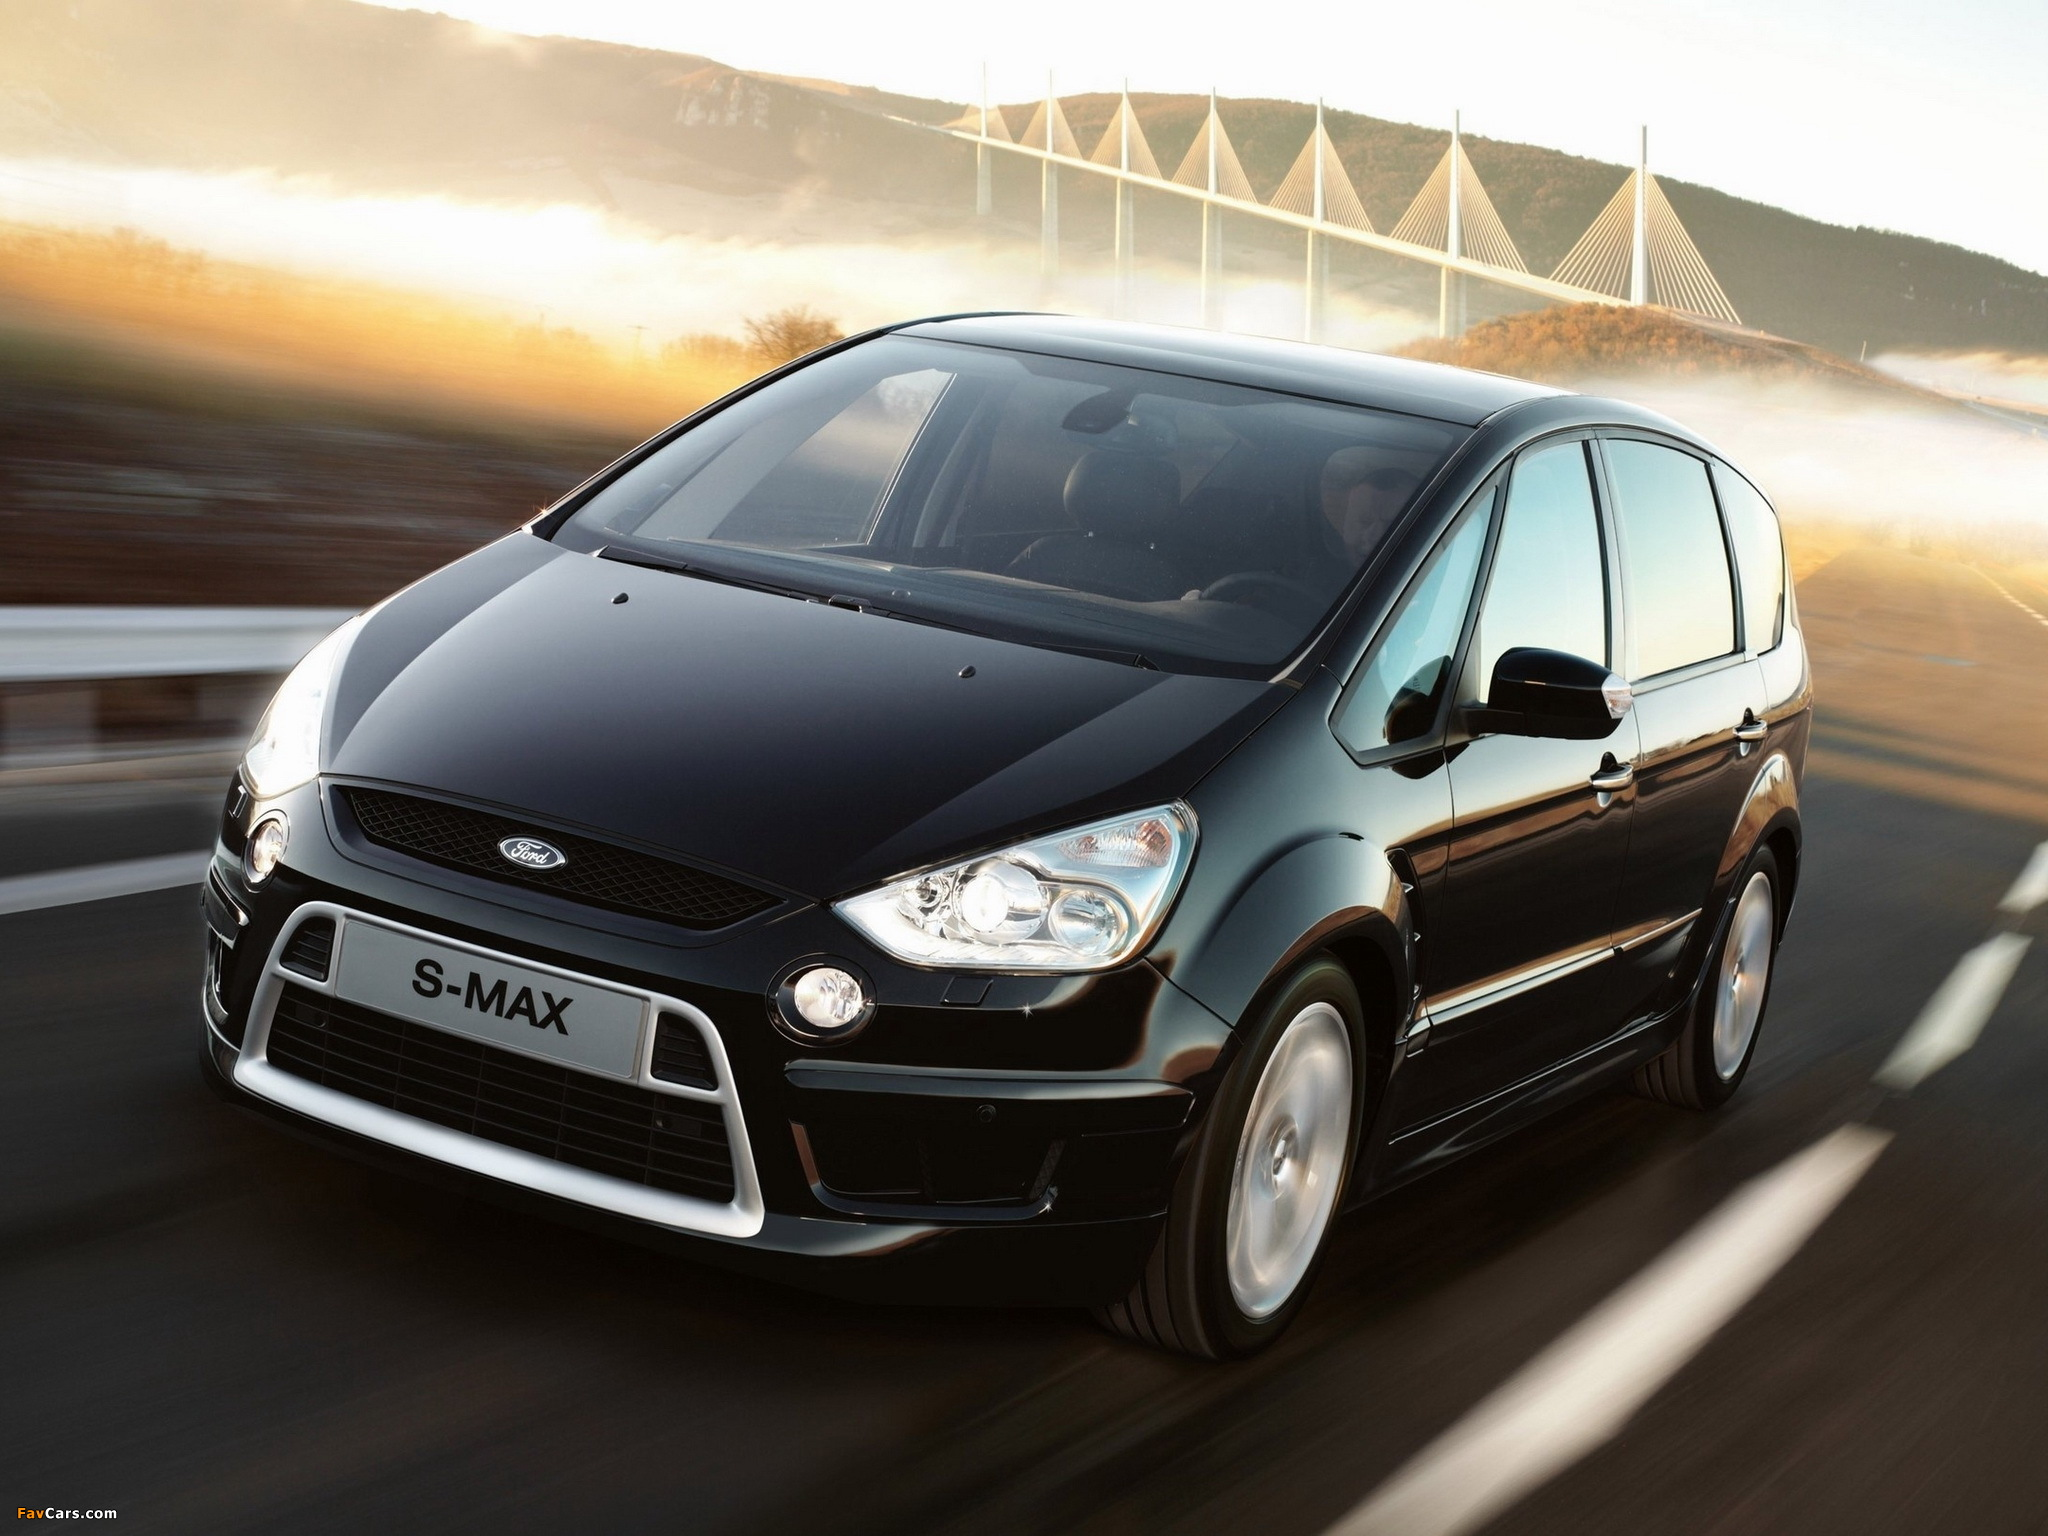 2008 Ford S-Max #21